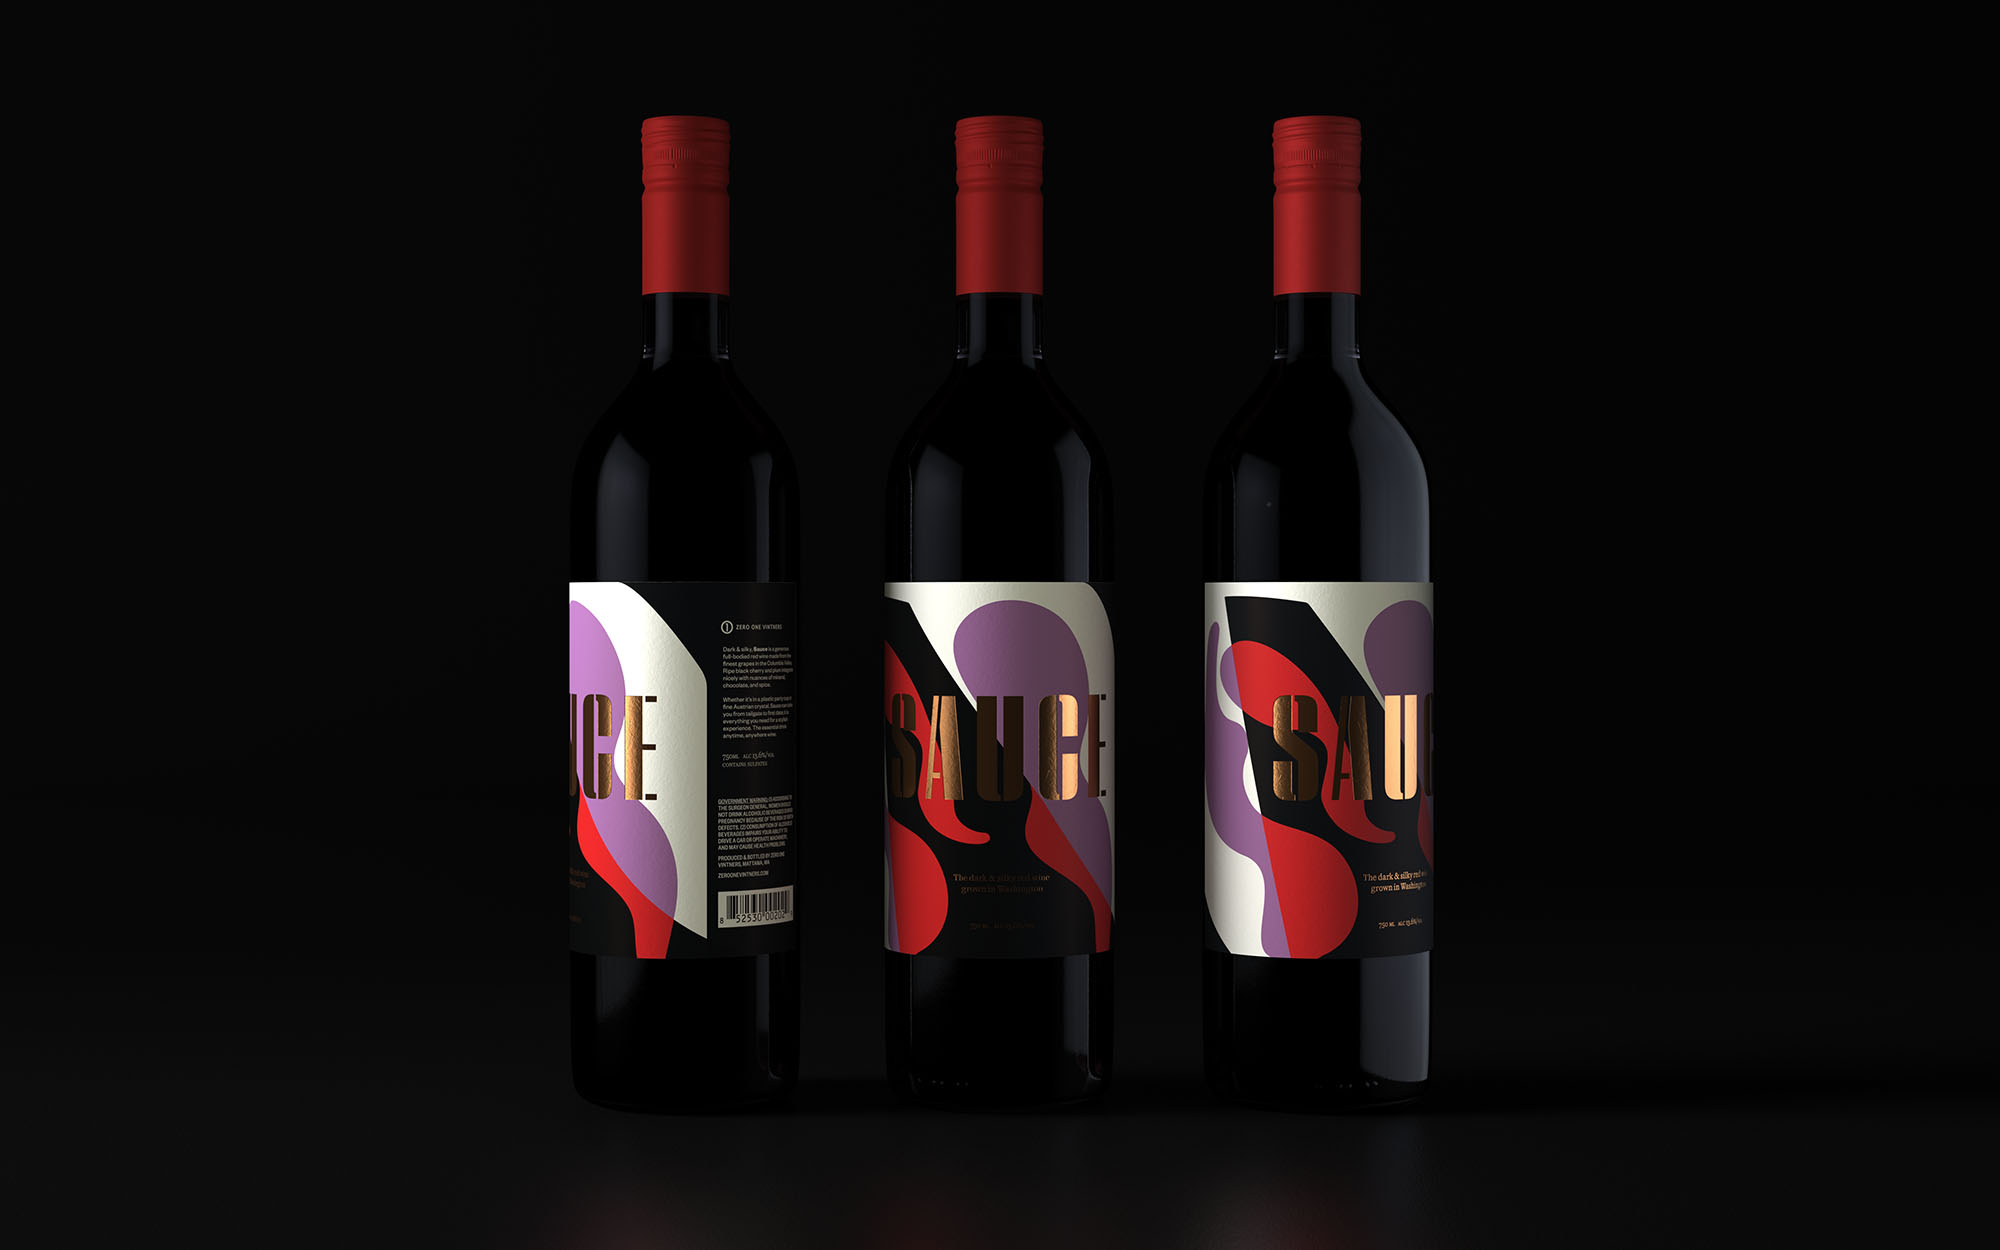 jderksen-sauce-winedesign-5